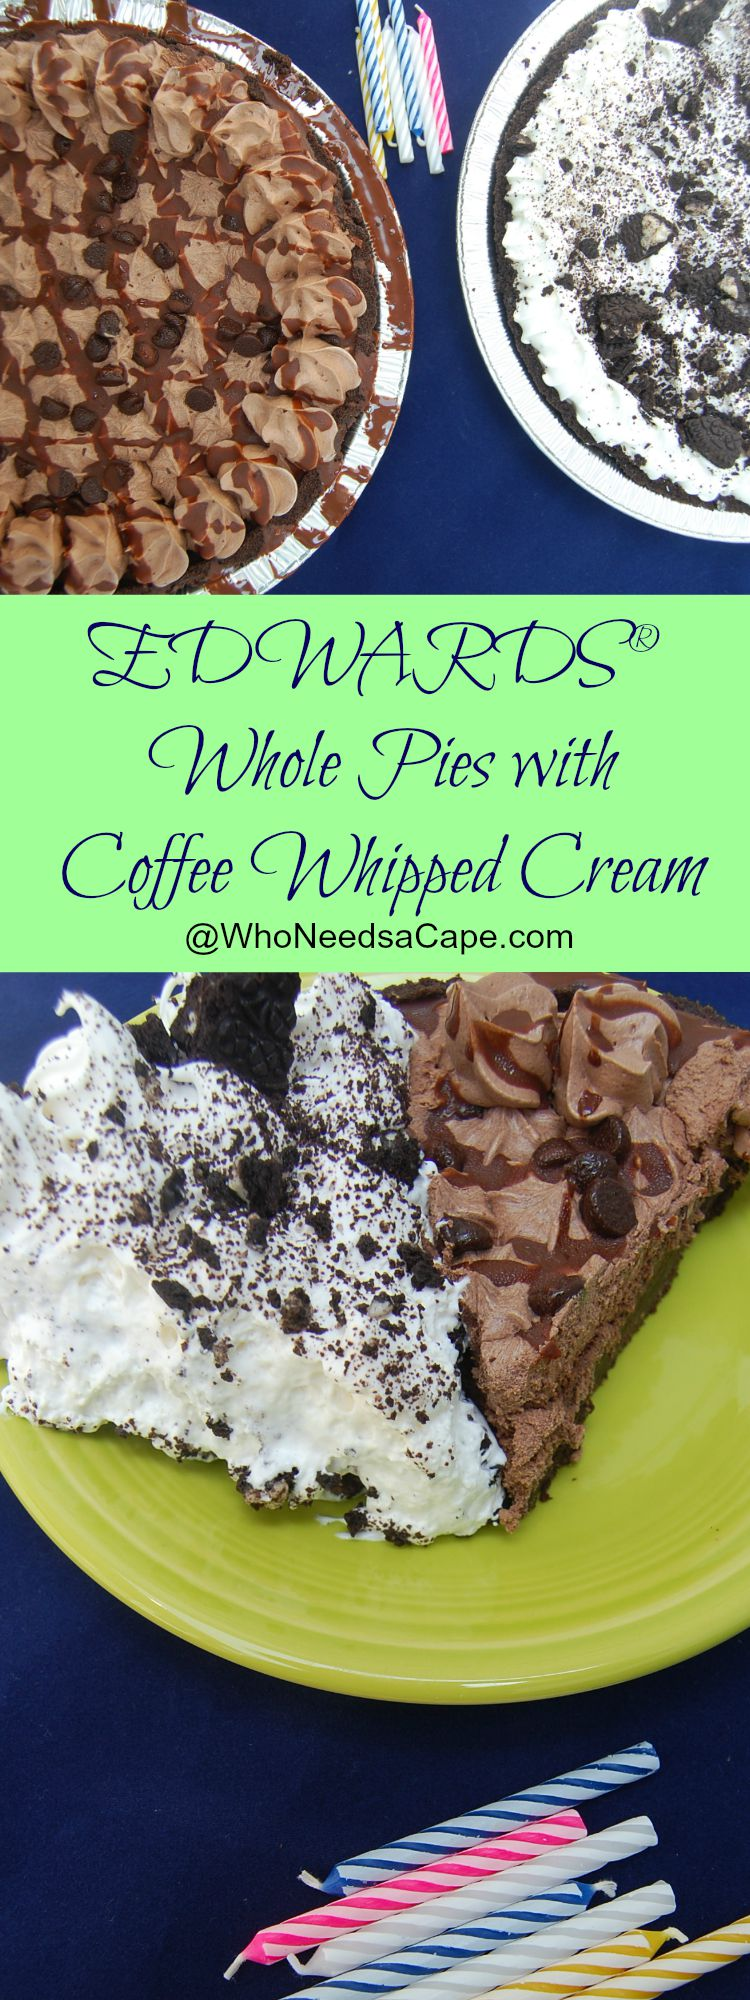 Edwards Pie Coffee Whipped Cream